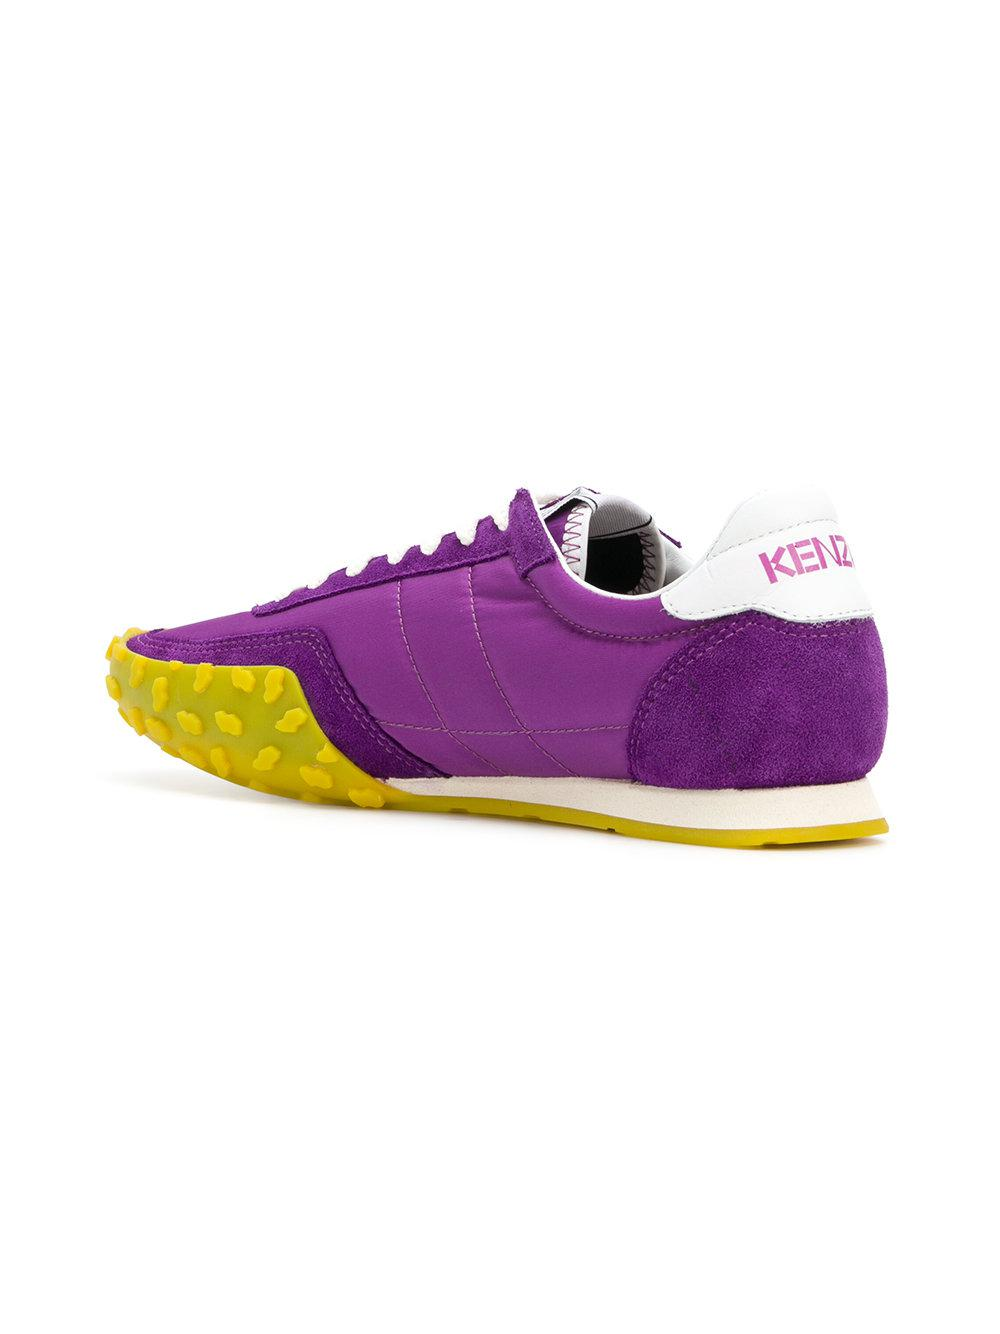 af97943e5d7 KENZO Move Sneakers in Purple - Lyst